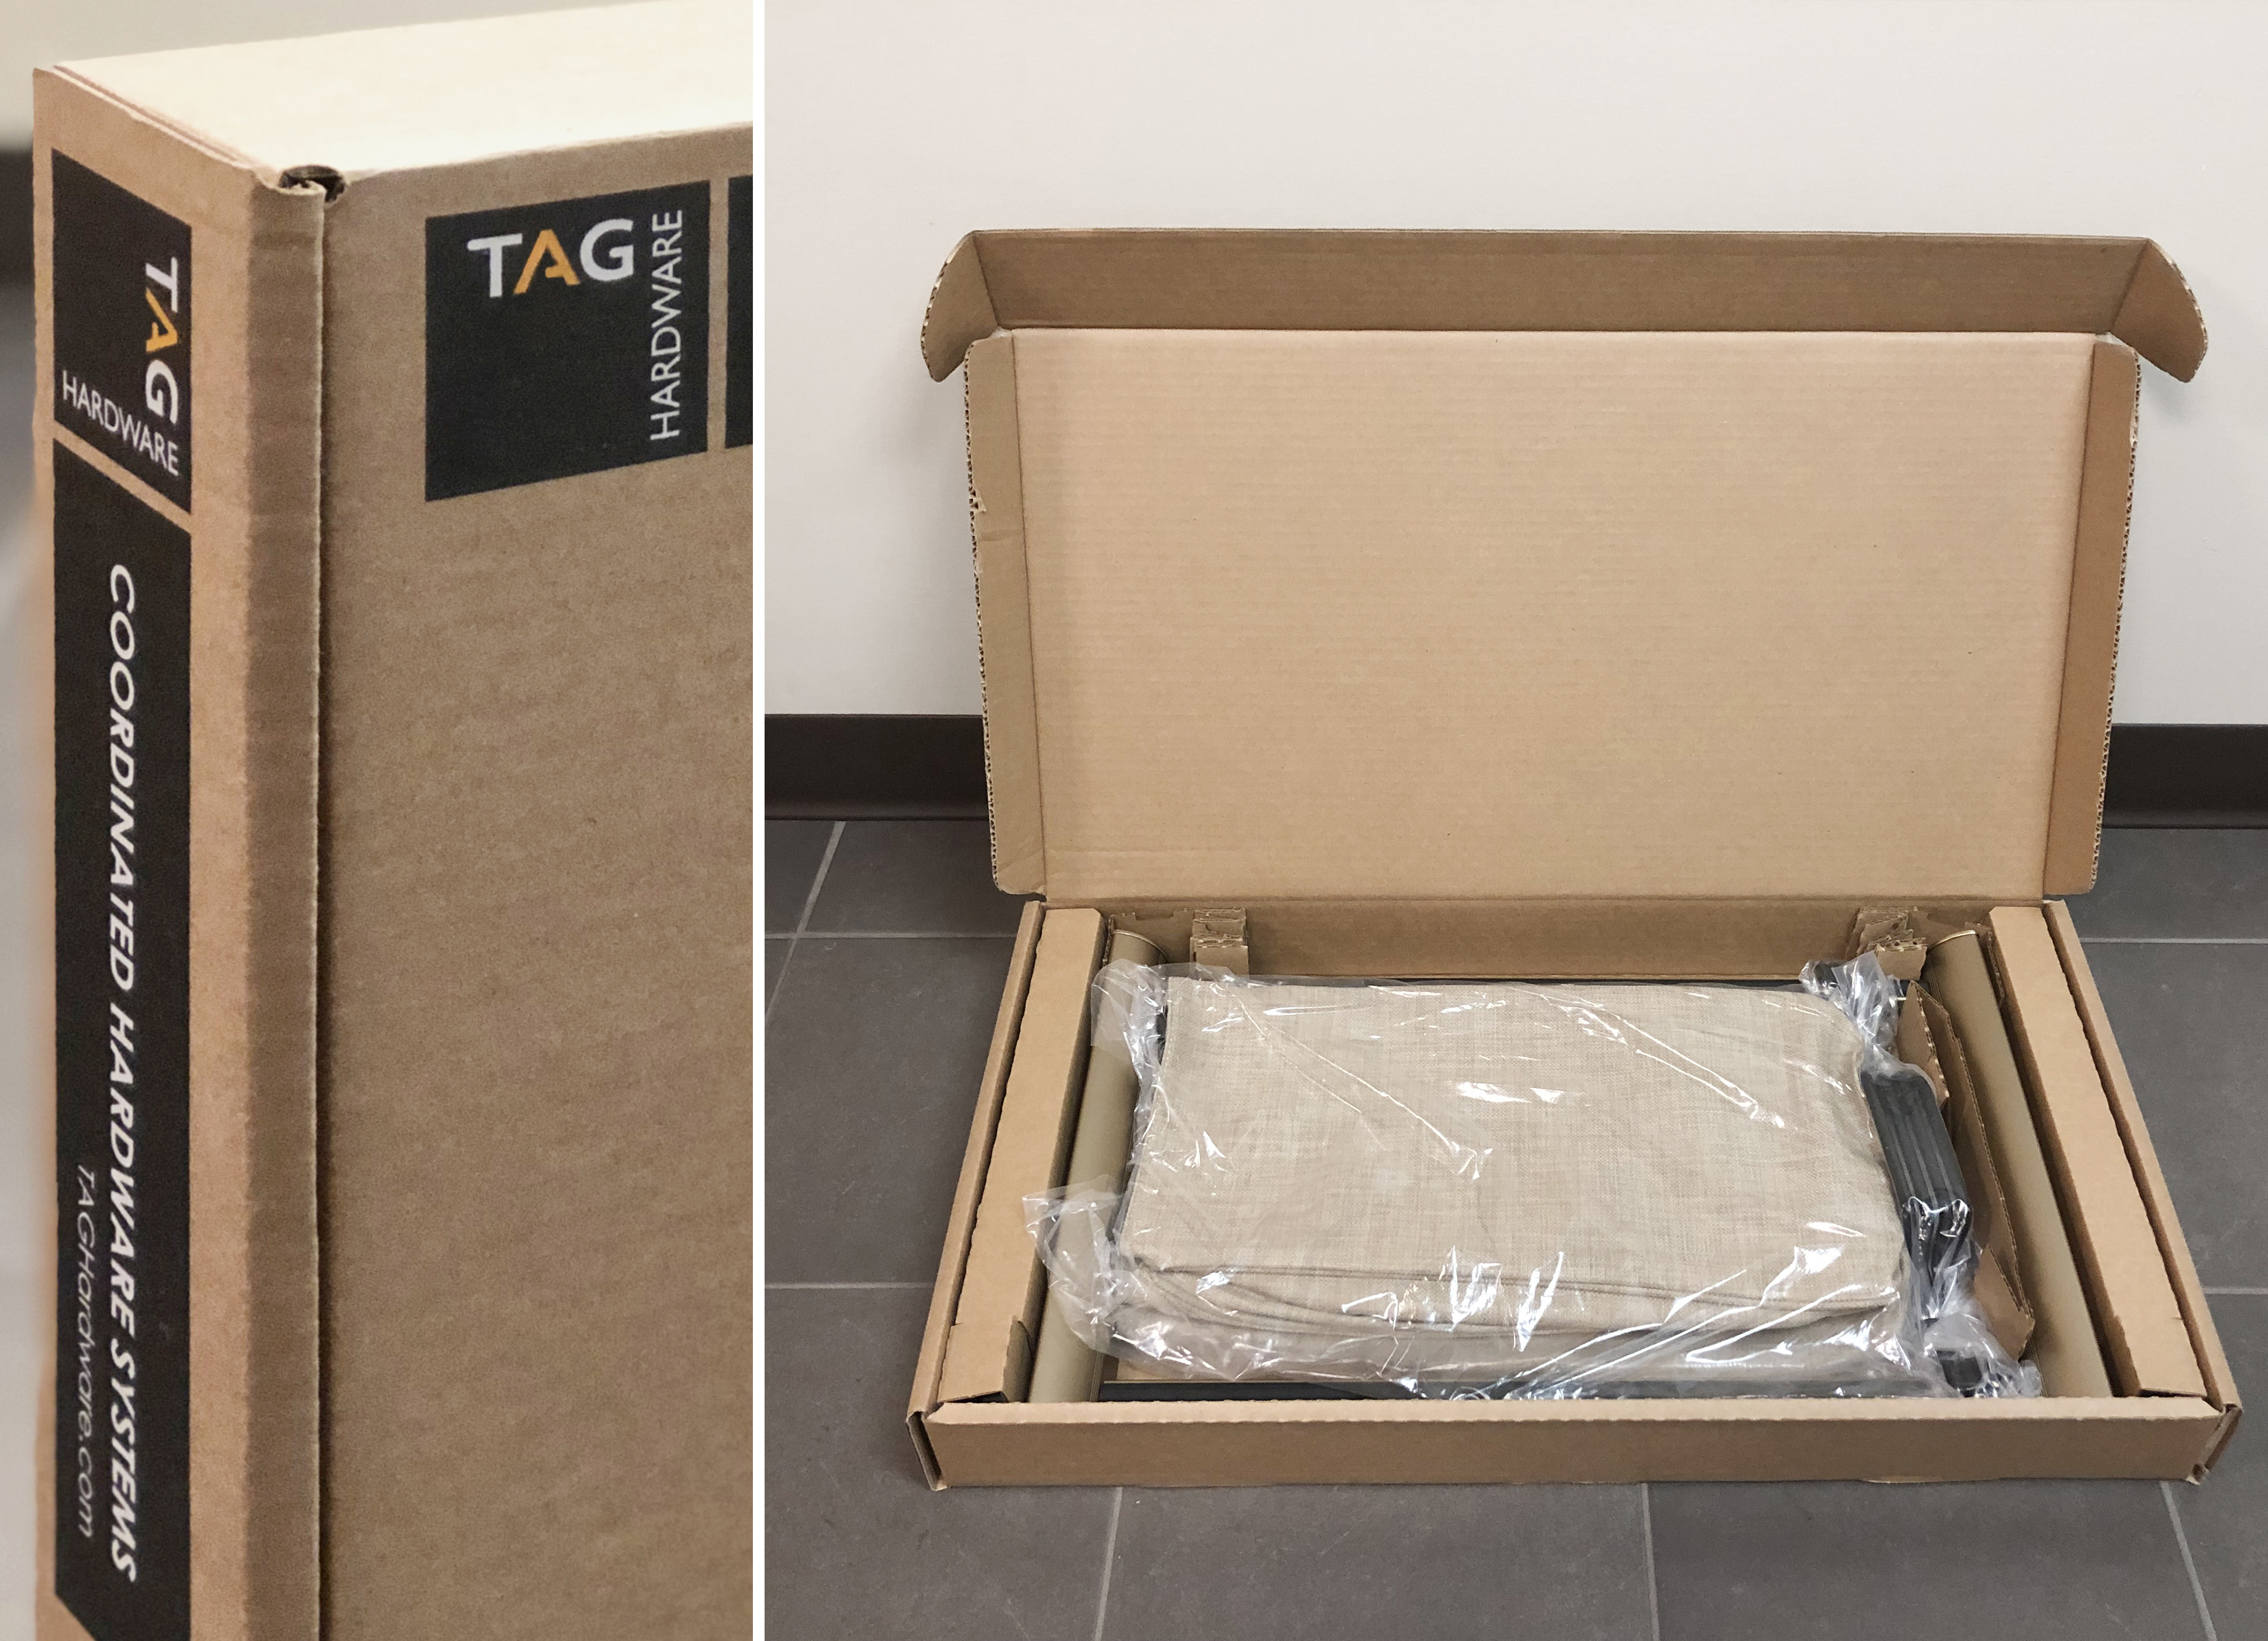 Packaging Update: New ENGAGE Boxes